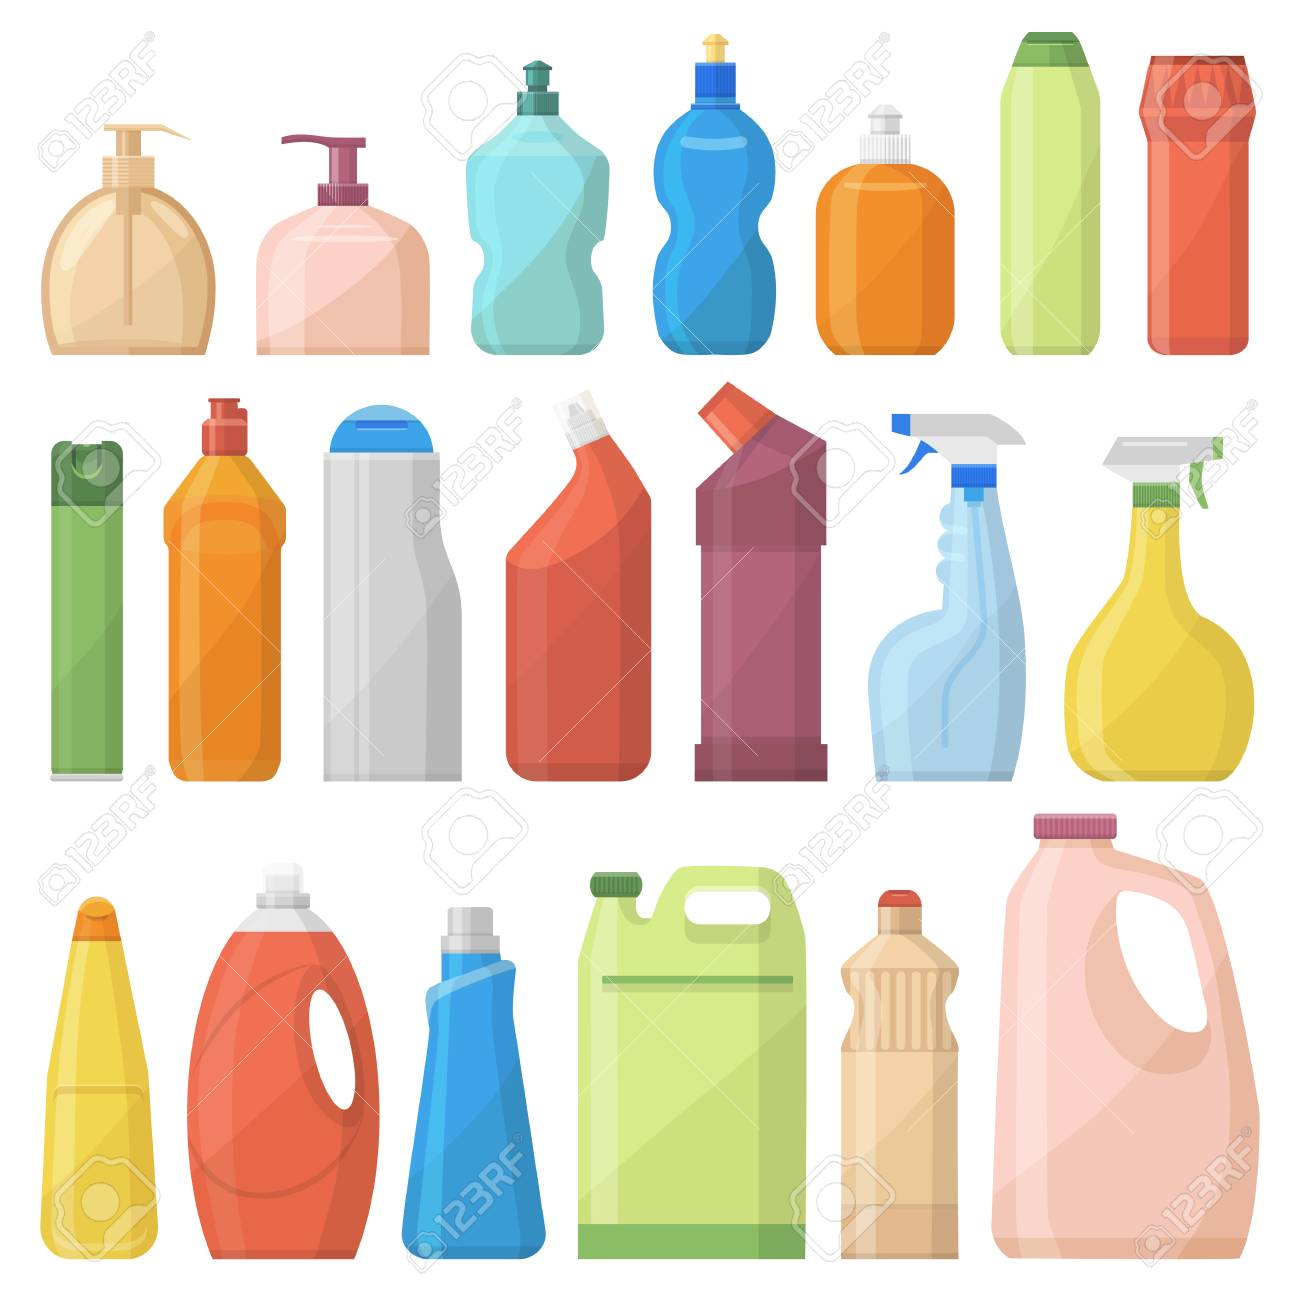 Household chemicals bottles pack cleaning housework liquid domestic fluid cleaner template vector illustration. - 87963404